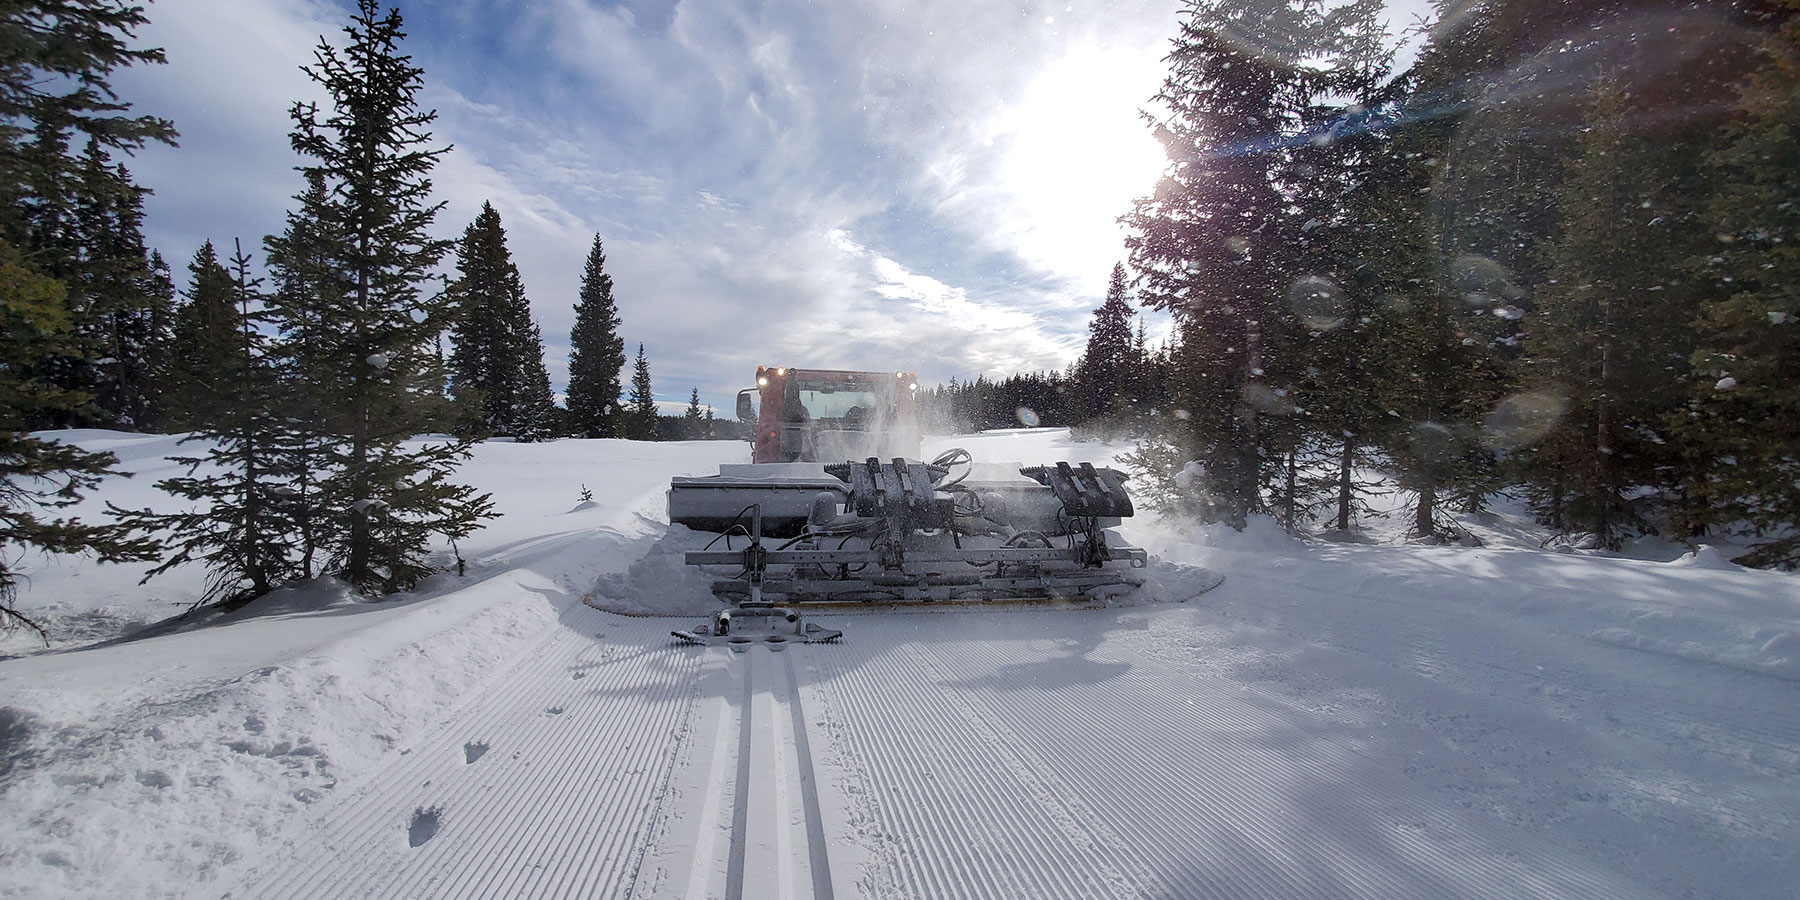 Grooming of cross country ski trails of Grand Mesa Nordic Council with PistenBully 400.